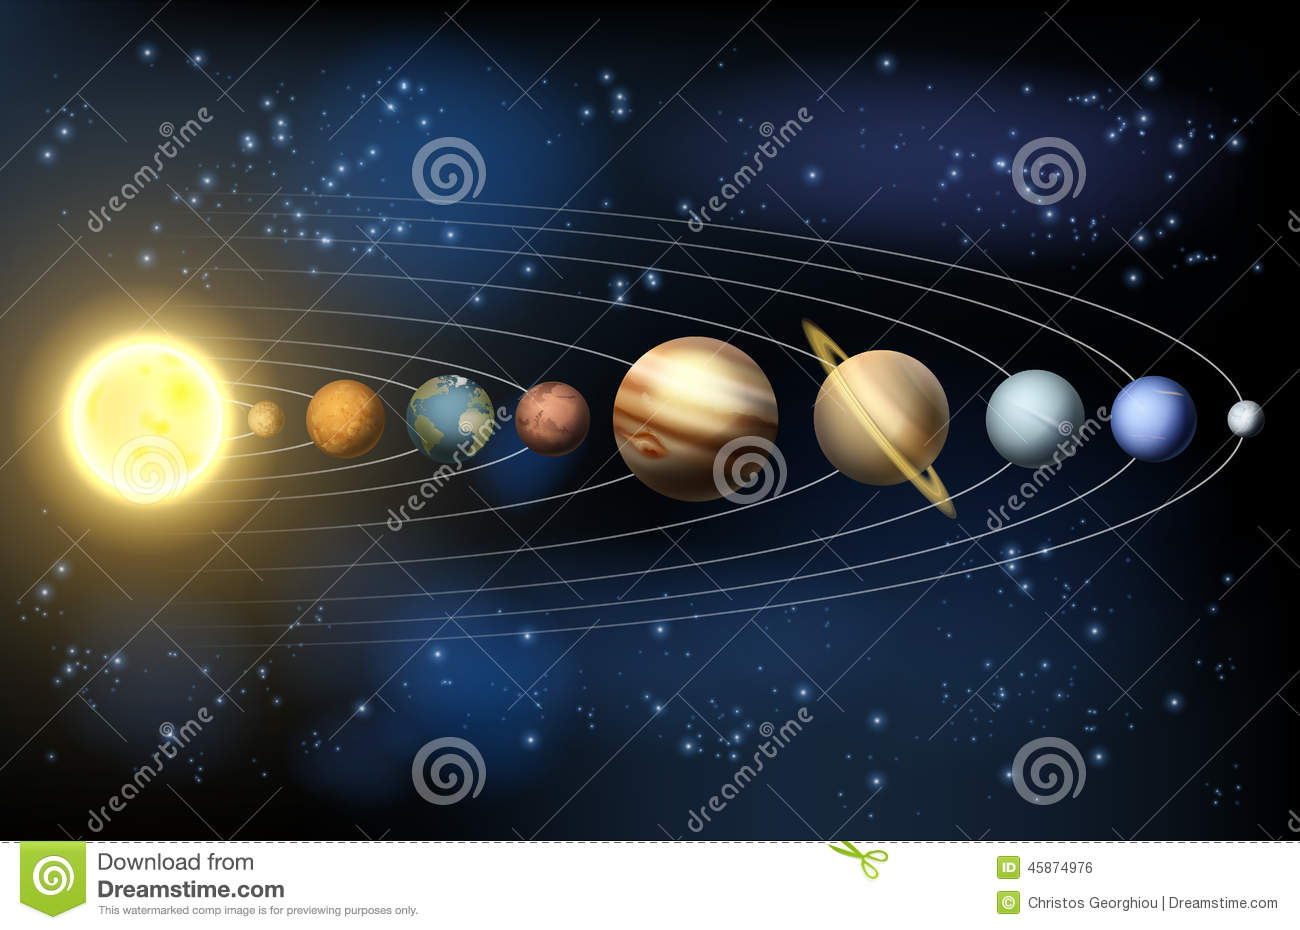 Planets Of The Solar System Stock Vector - Image: 45874976